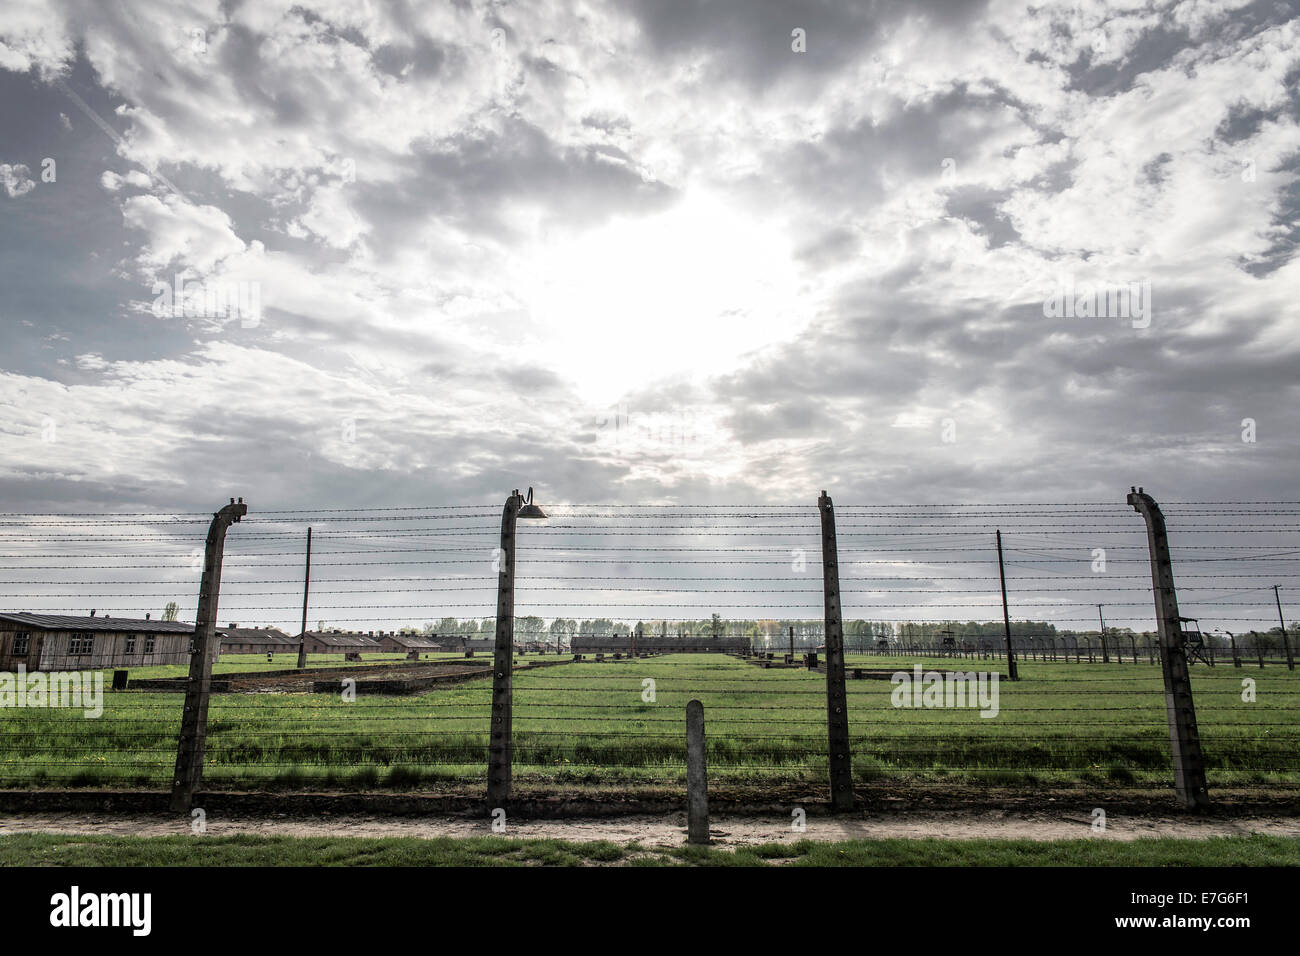 Barbed wire fence, Auschwitz II-Birkenau extermination camp, Oswiecim, Poland - Stock Image